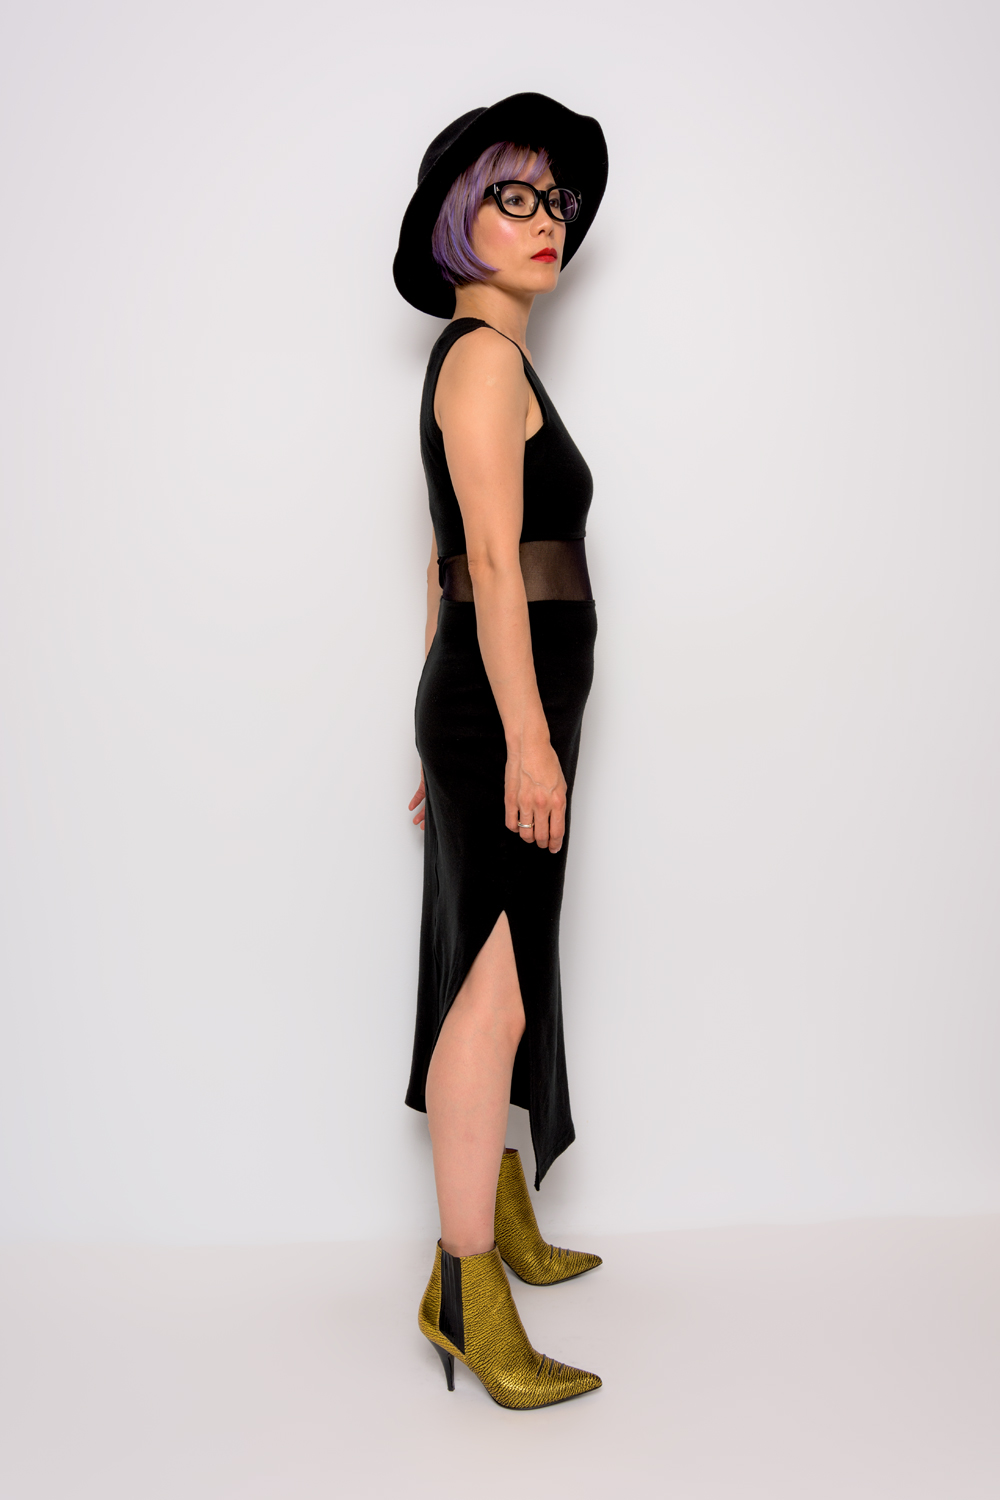 ROCK MAMA NYC LIFESTYLE BLOG - ROCK MAMA NYC VINTAGE ONLINE SHOP WILL OPEN SOON